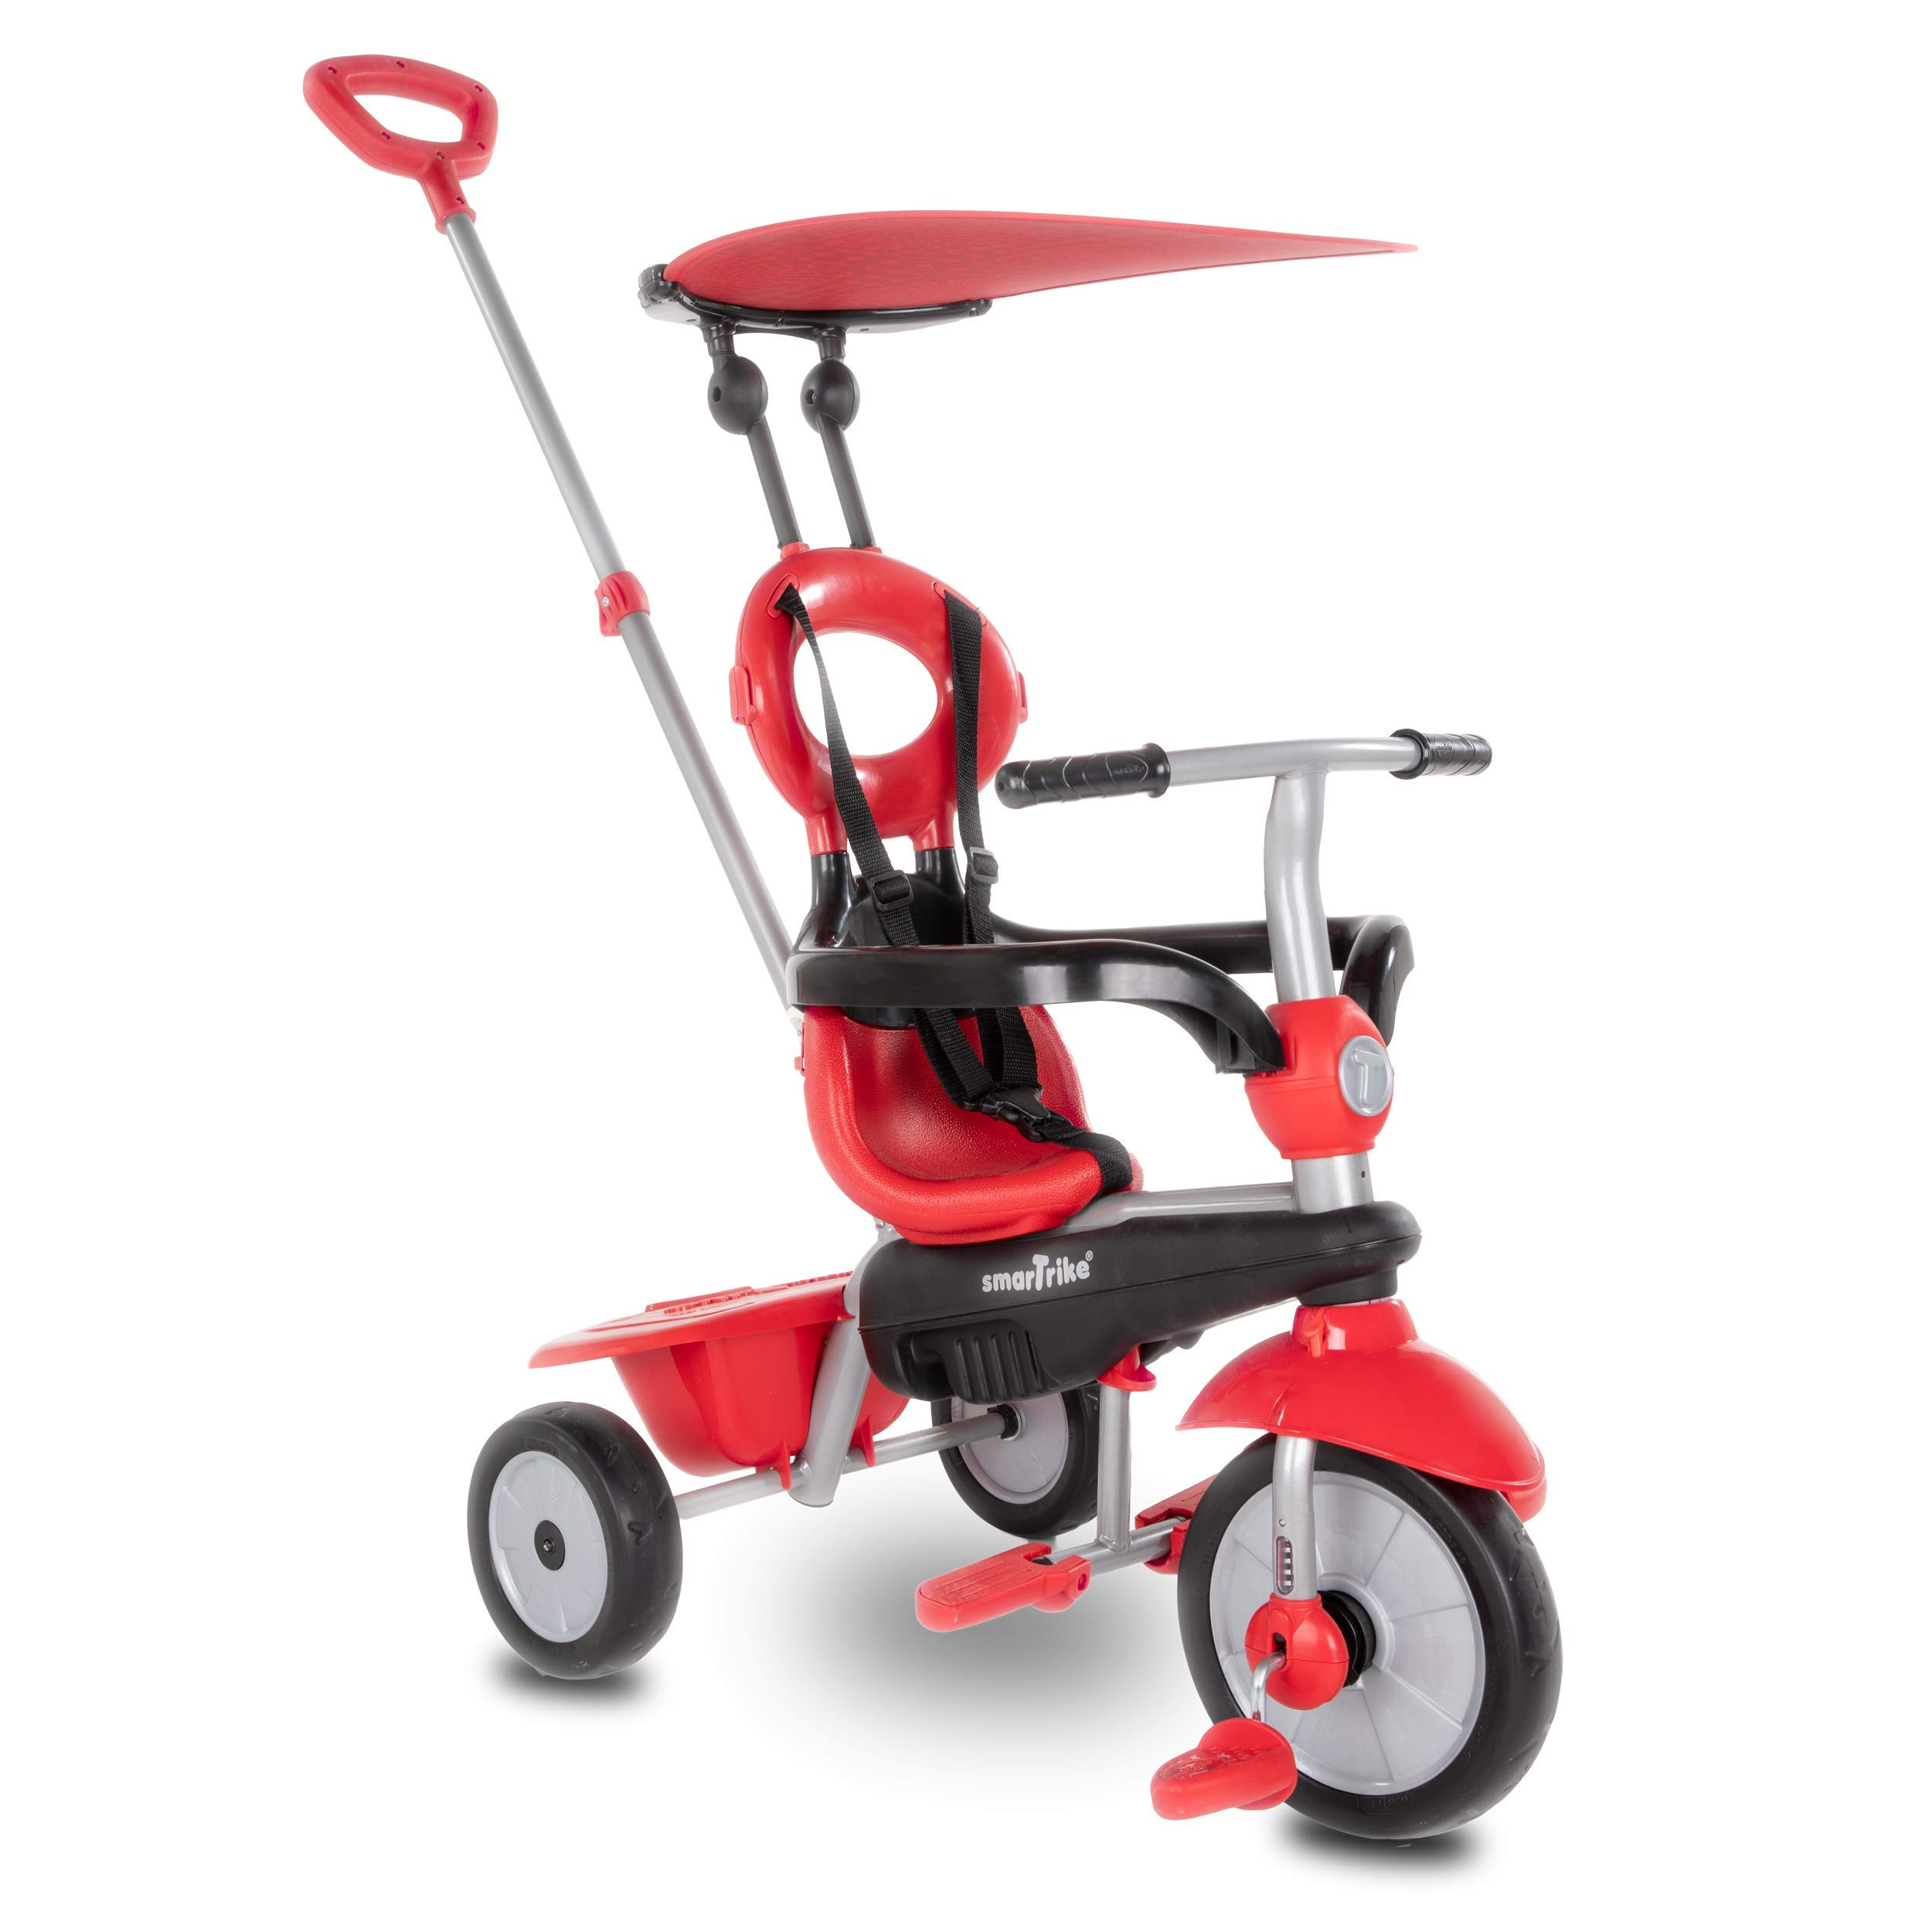 smarTrike Zoom 4 in 1 baby Tricycle, Red (Renewed)